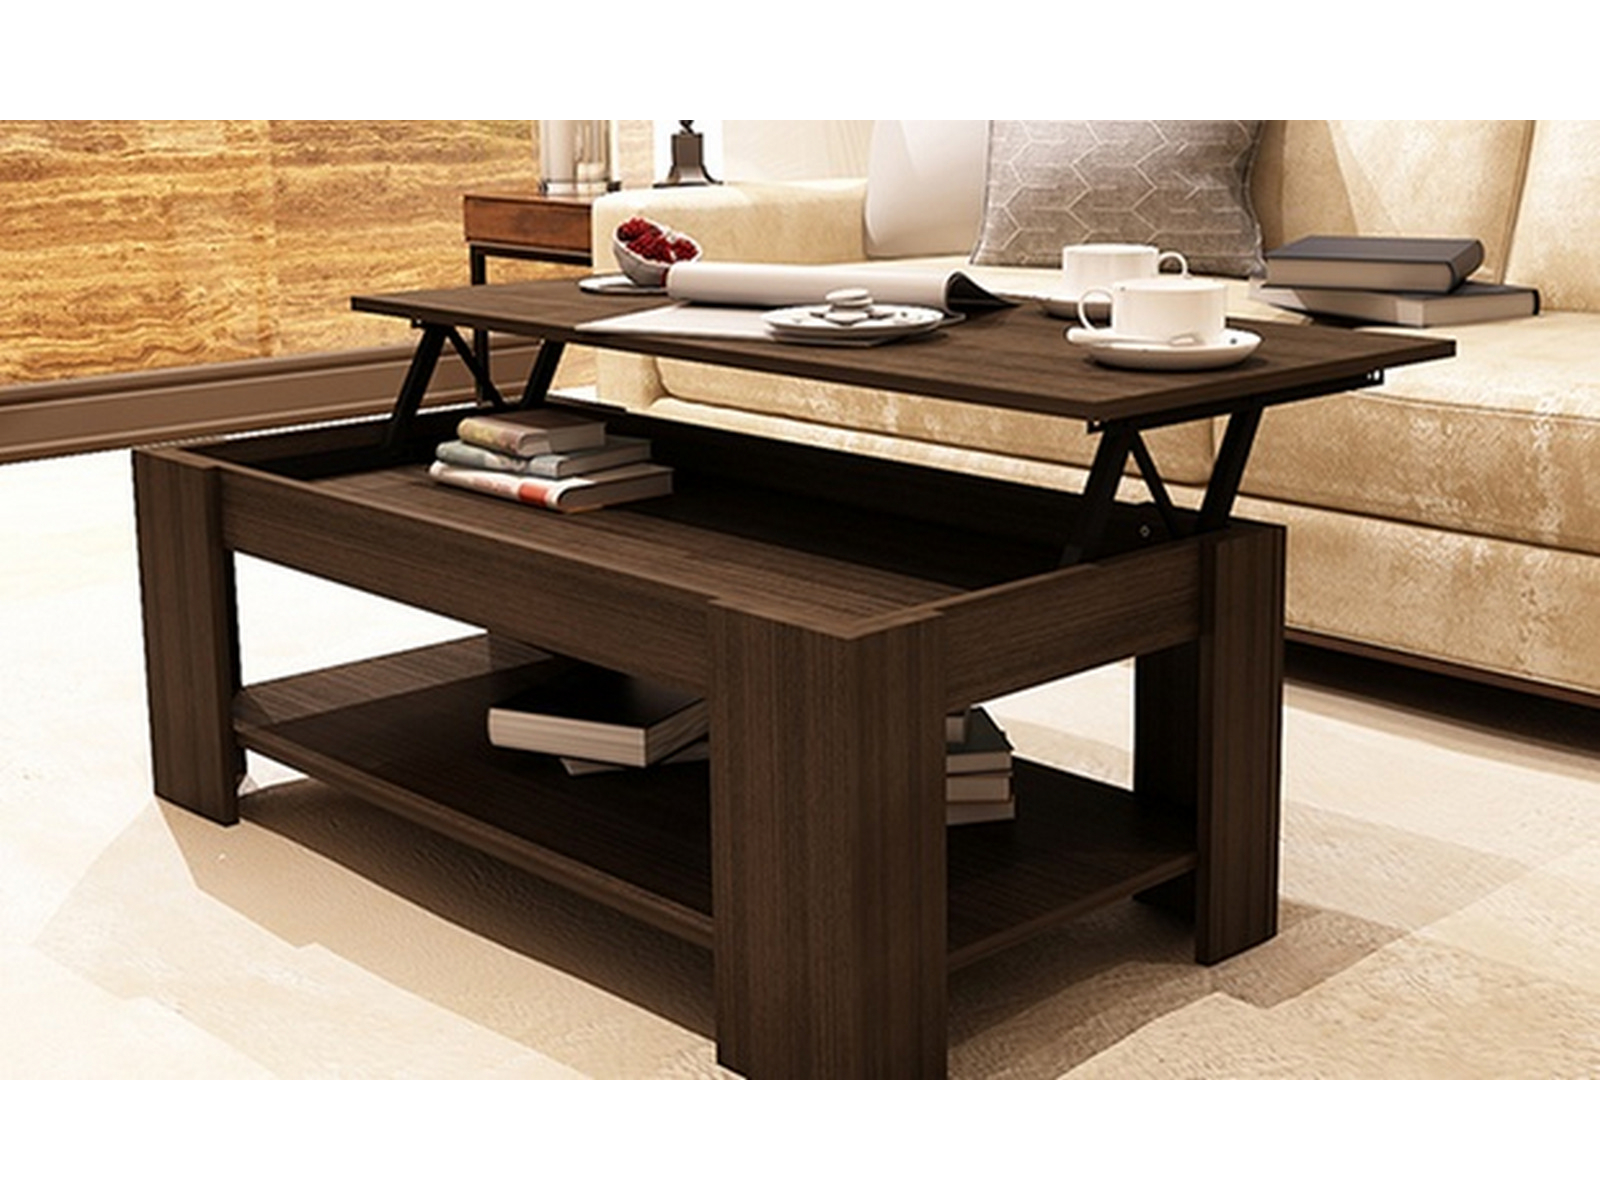 New Caspian Espresso Lift Up Top Coffee Table With Storage Shelf within proportions 1600 X 1200